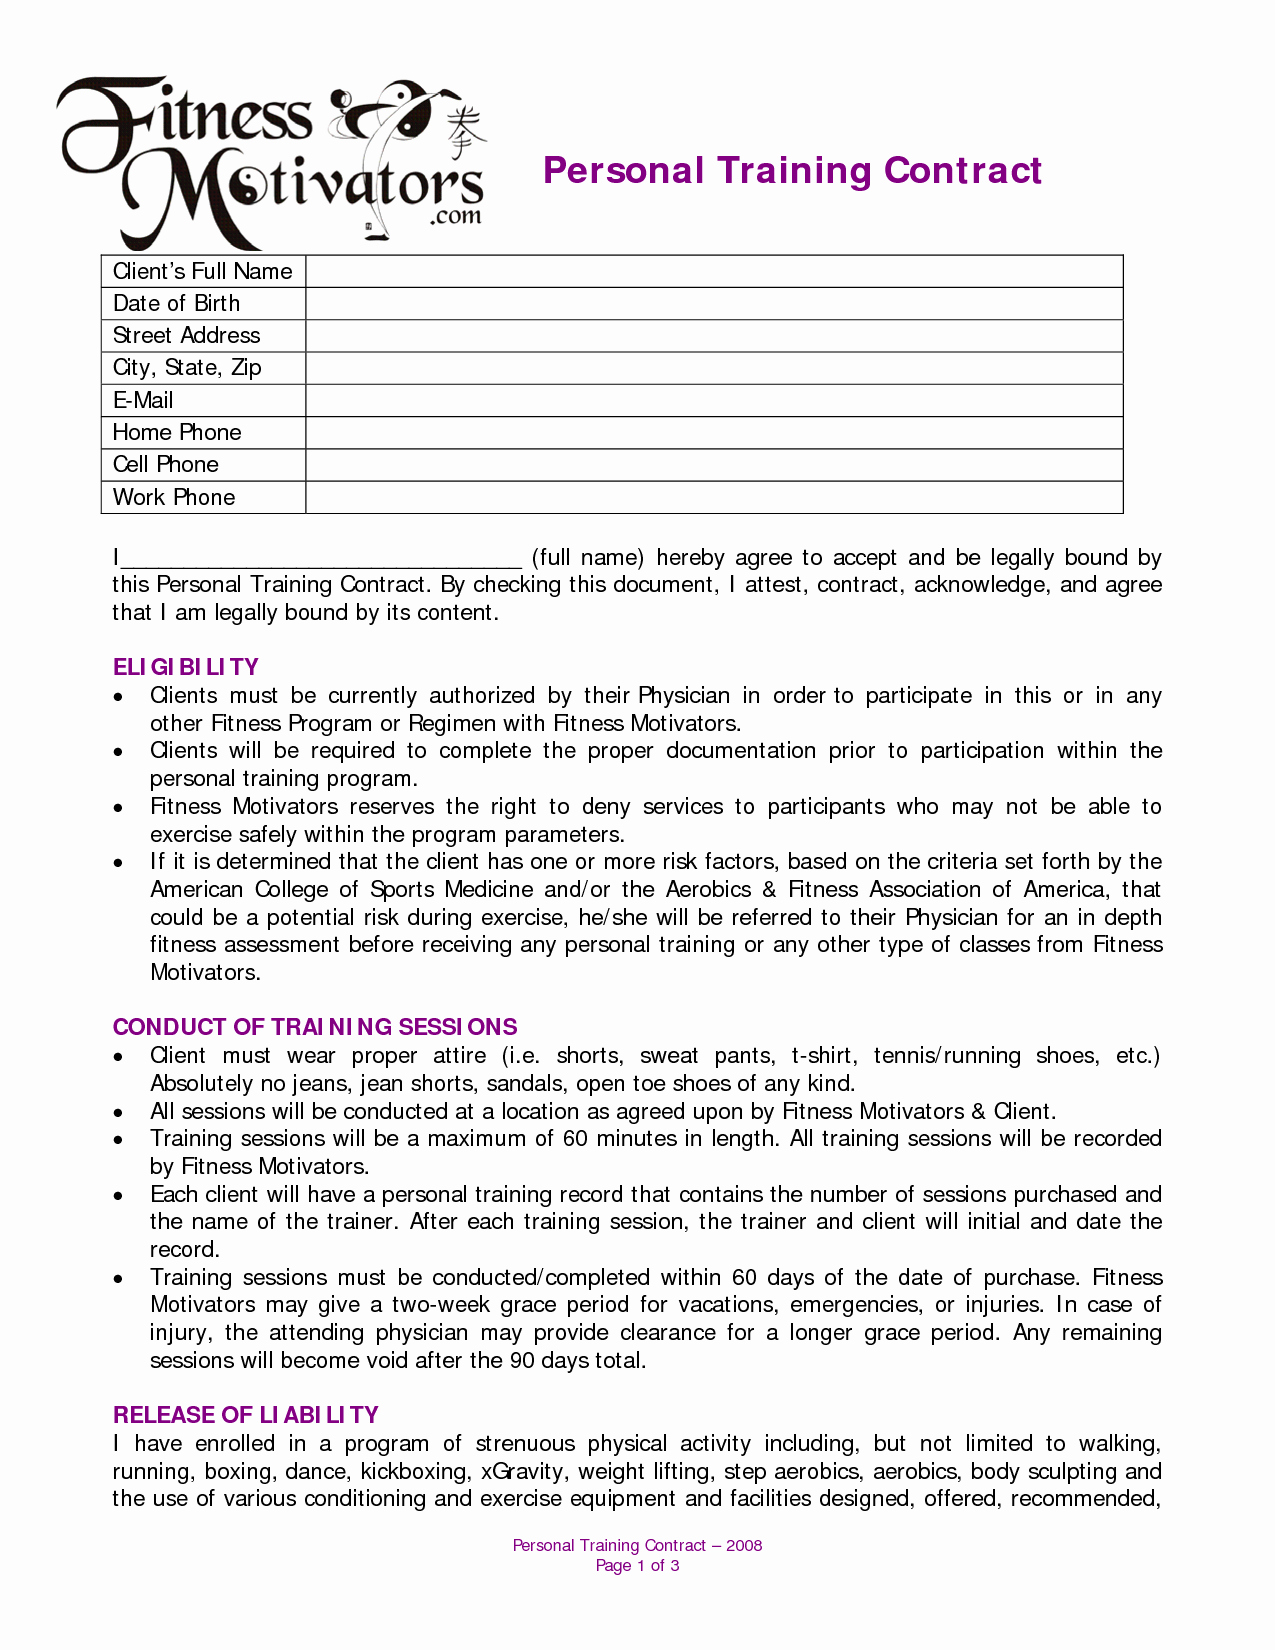 Personal Training Contract Template New Personal Training Contract Agreement